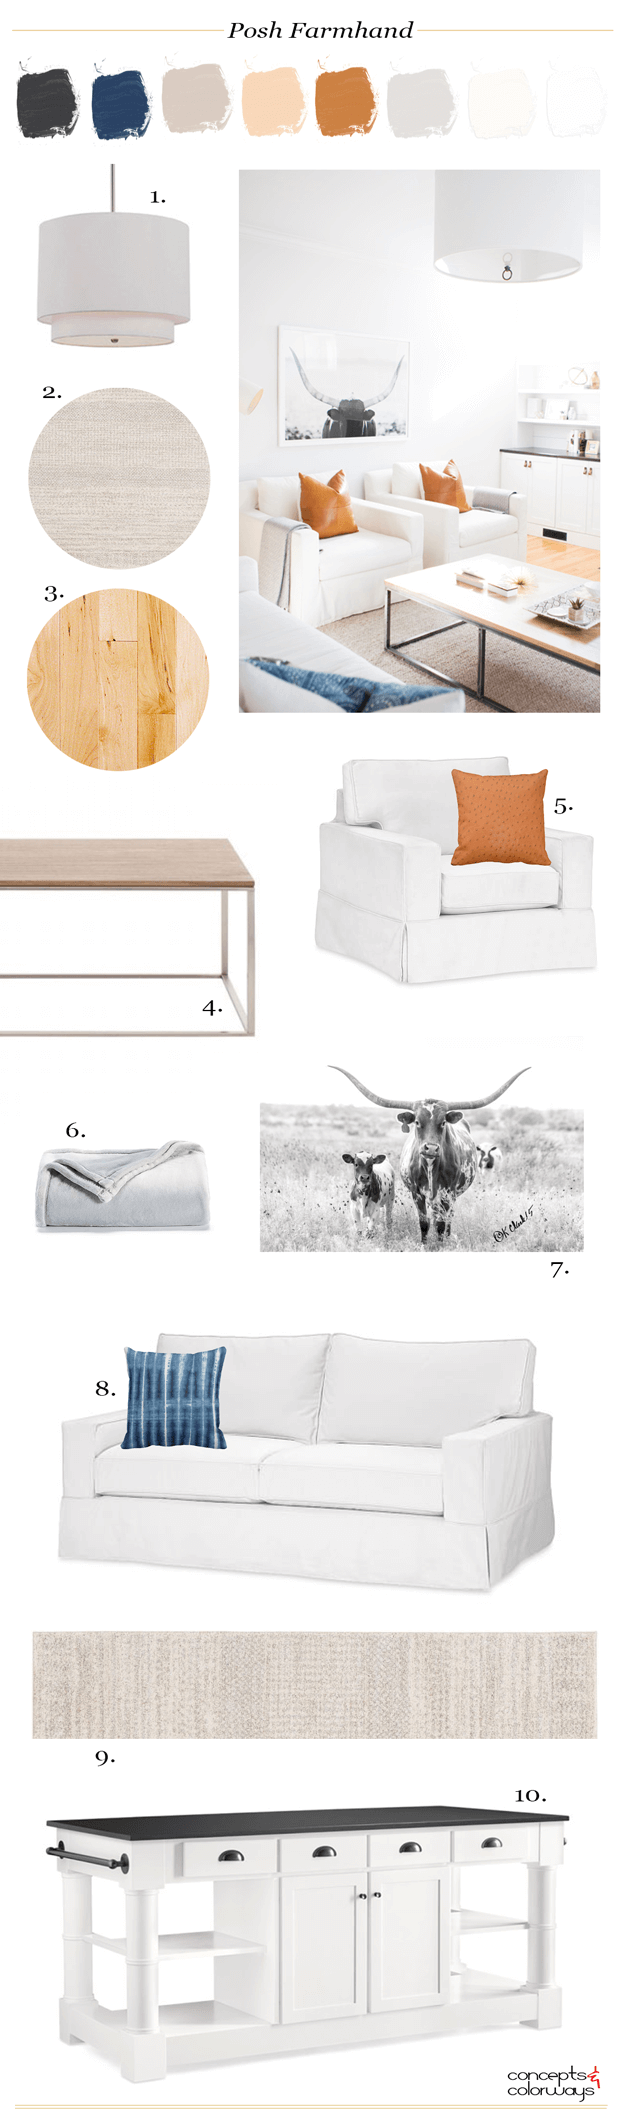 posh farmhand interior design mood board